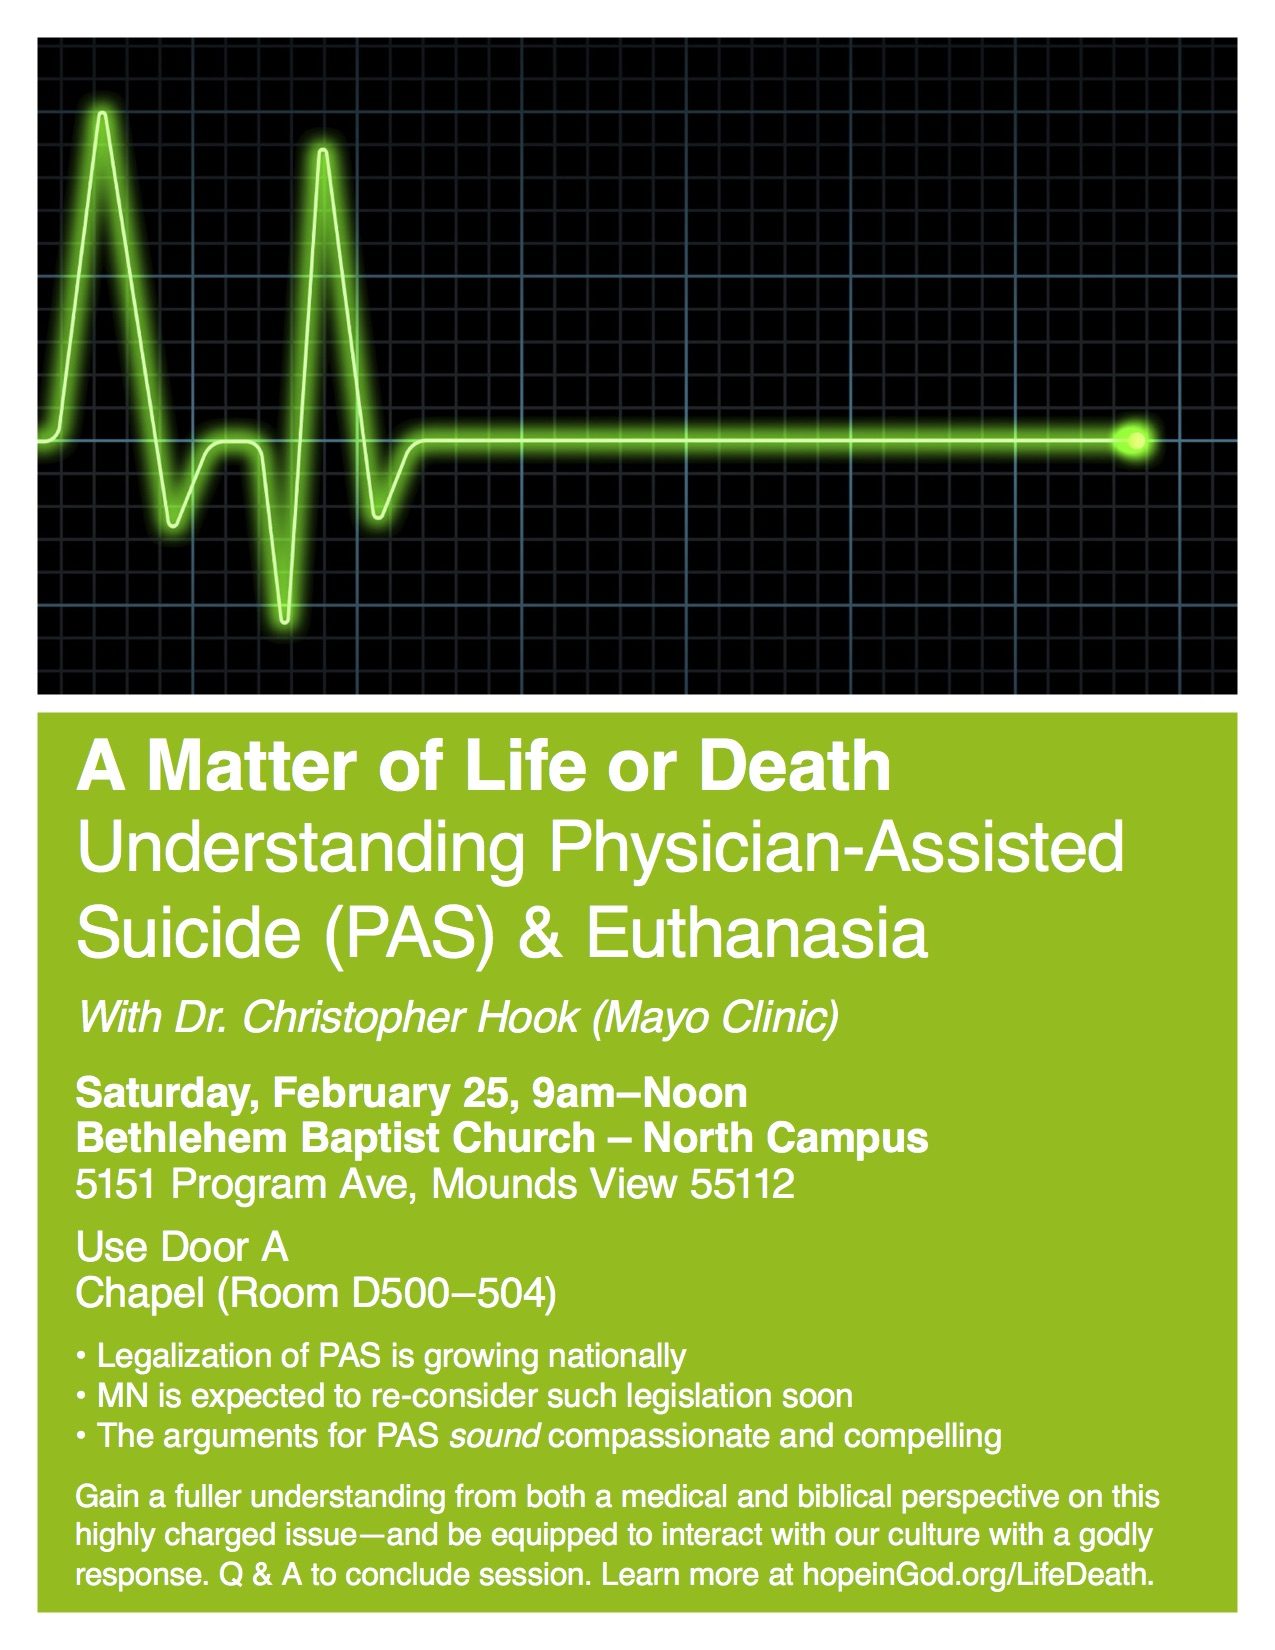 Life or Death Outreach poster V1.jpg